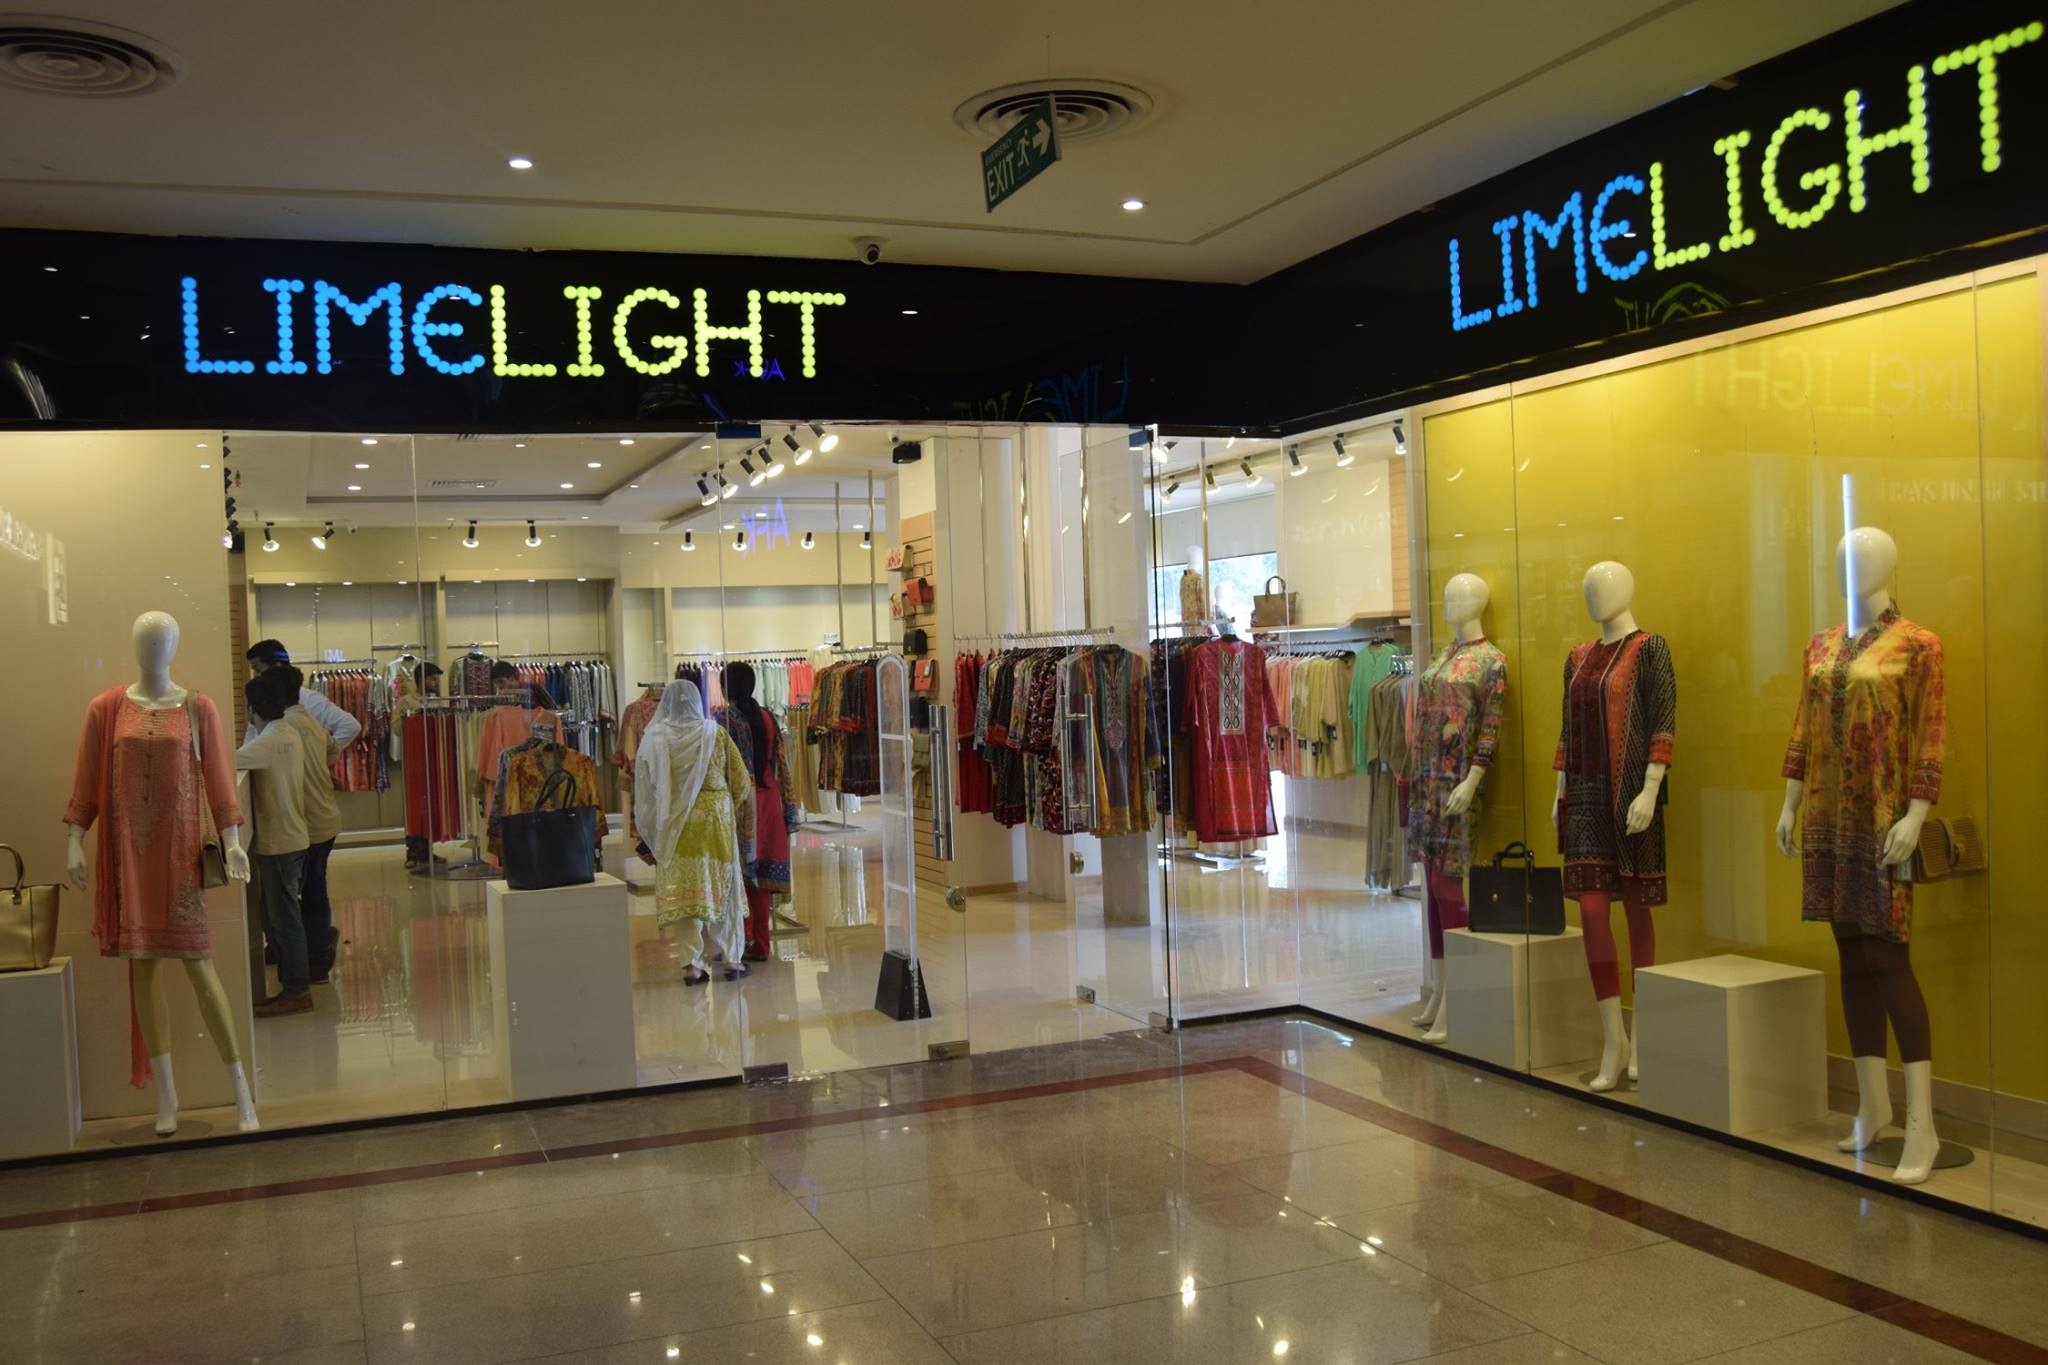 LimeLight - Women Casual & Formal Pret Unstitched Hand Bags Fragnances Bottoms Scarves Accressories Shoes Girls Winter Arrival LimeLight Mens